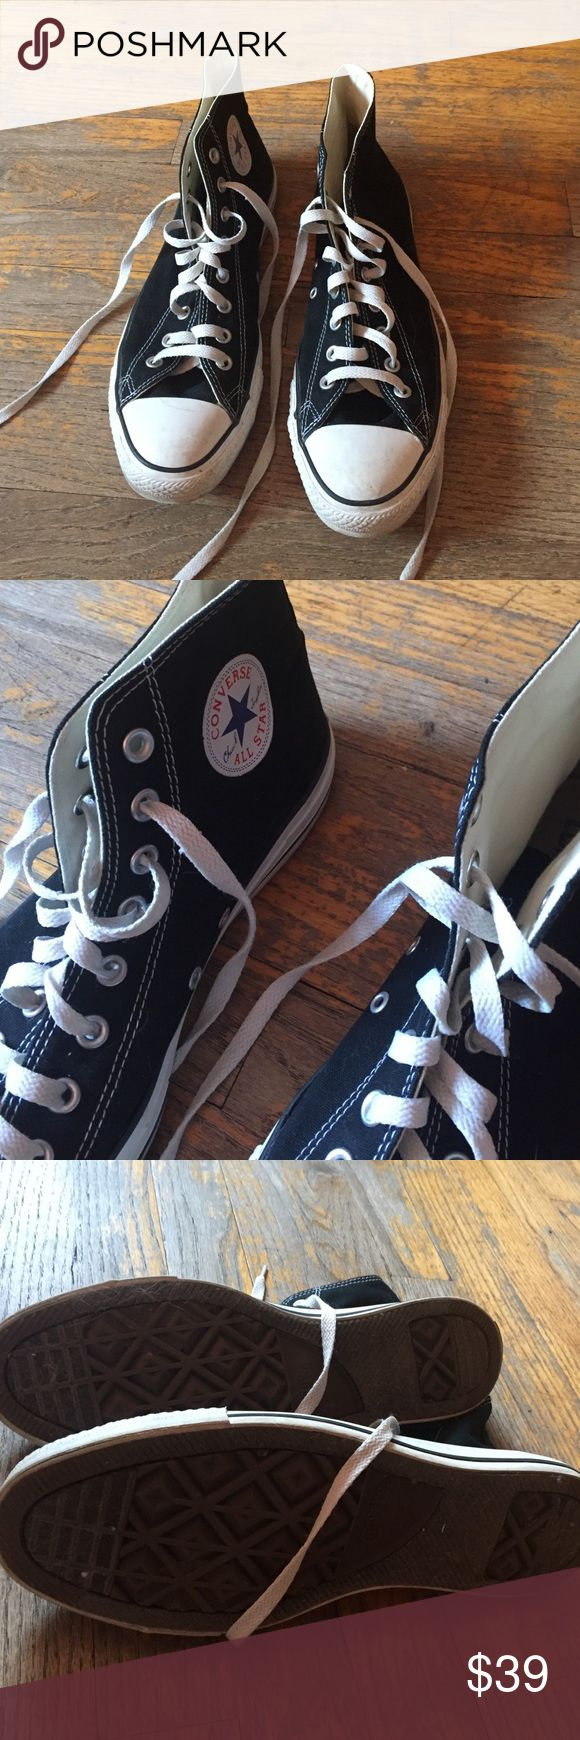 Size 10 men's converse high tops!!! Black converse size 10, worn a handful of times in great condition!!! Converse Shoes Sneakers